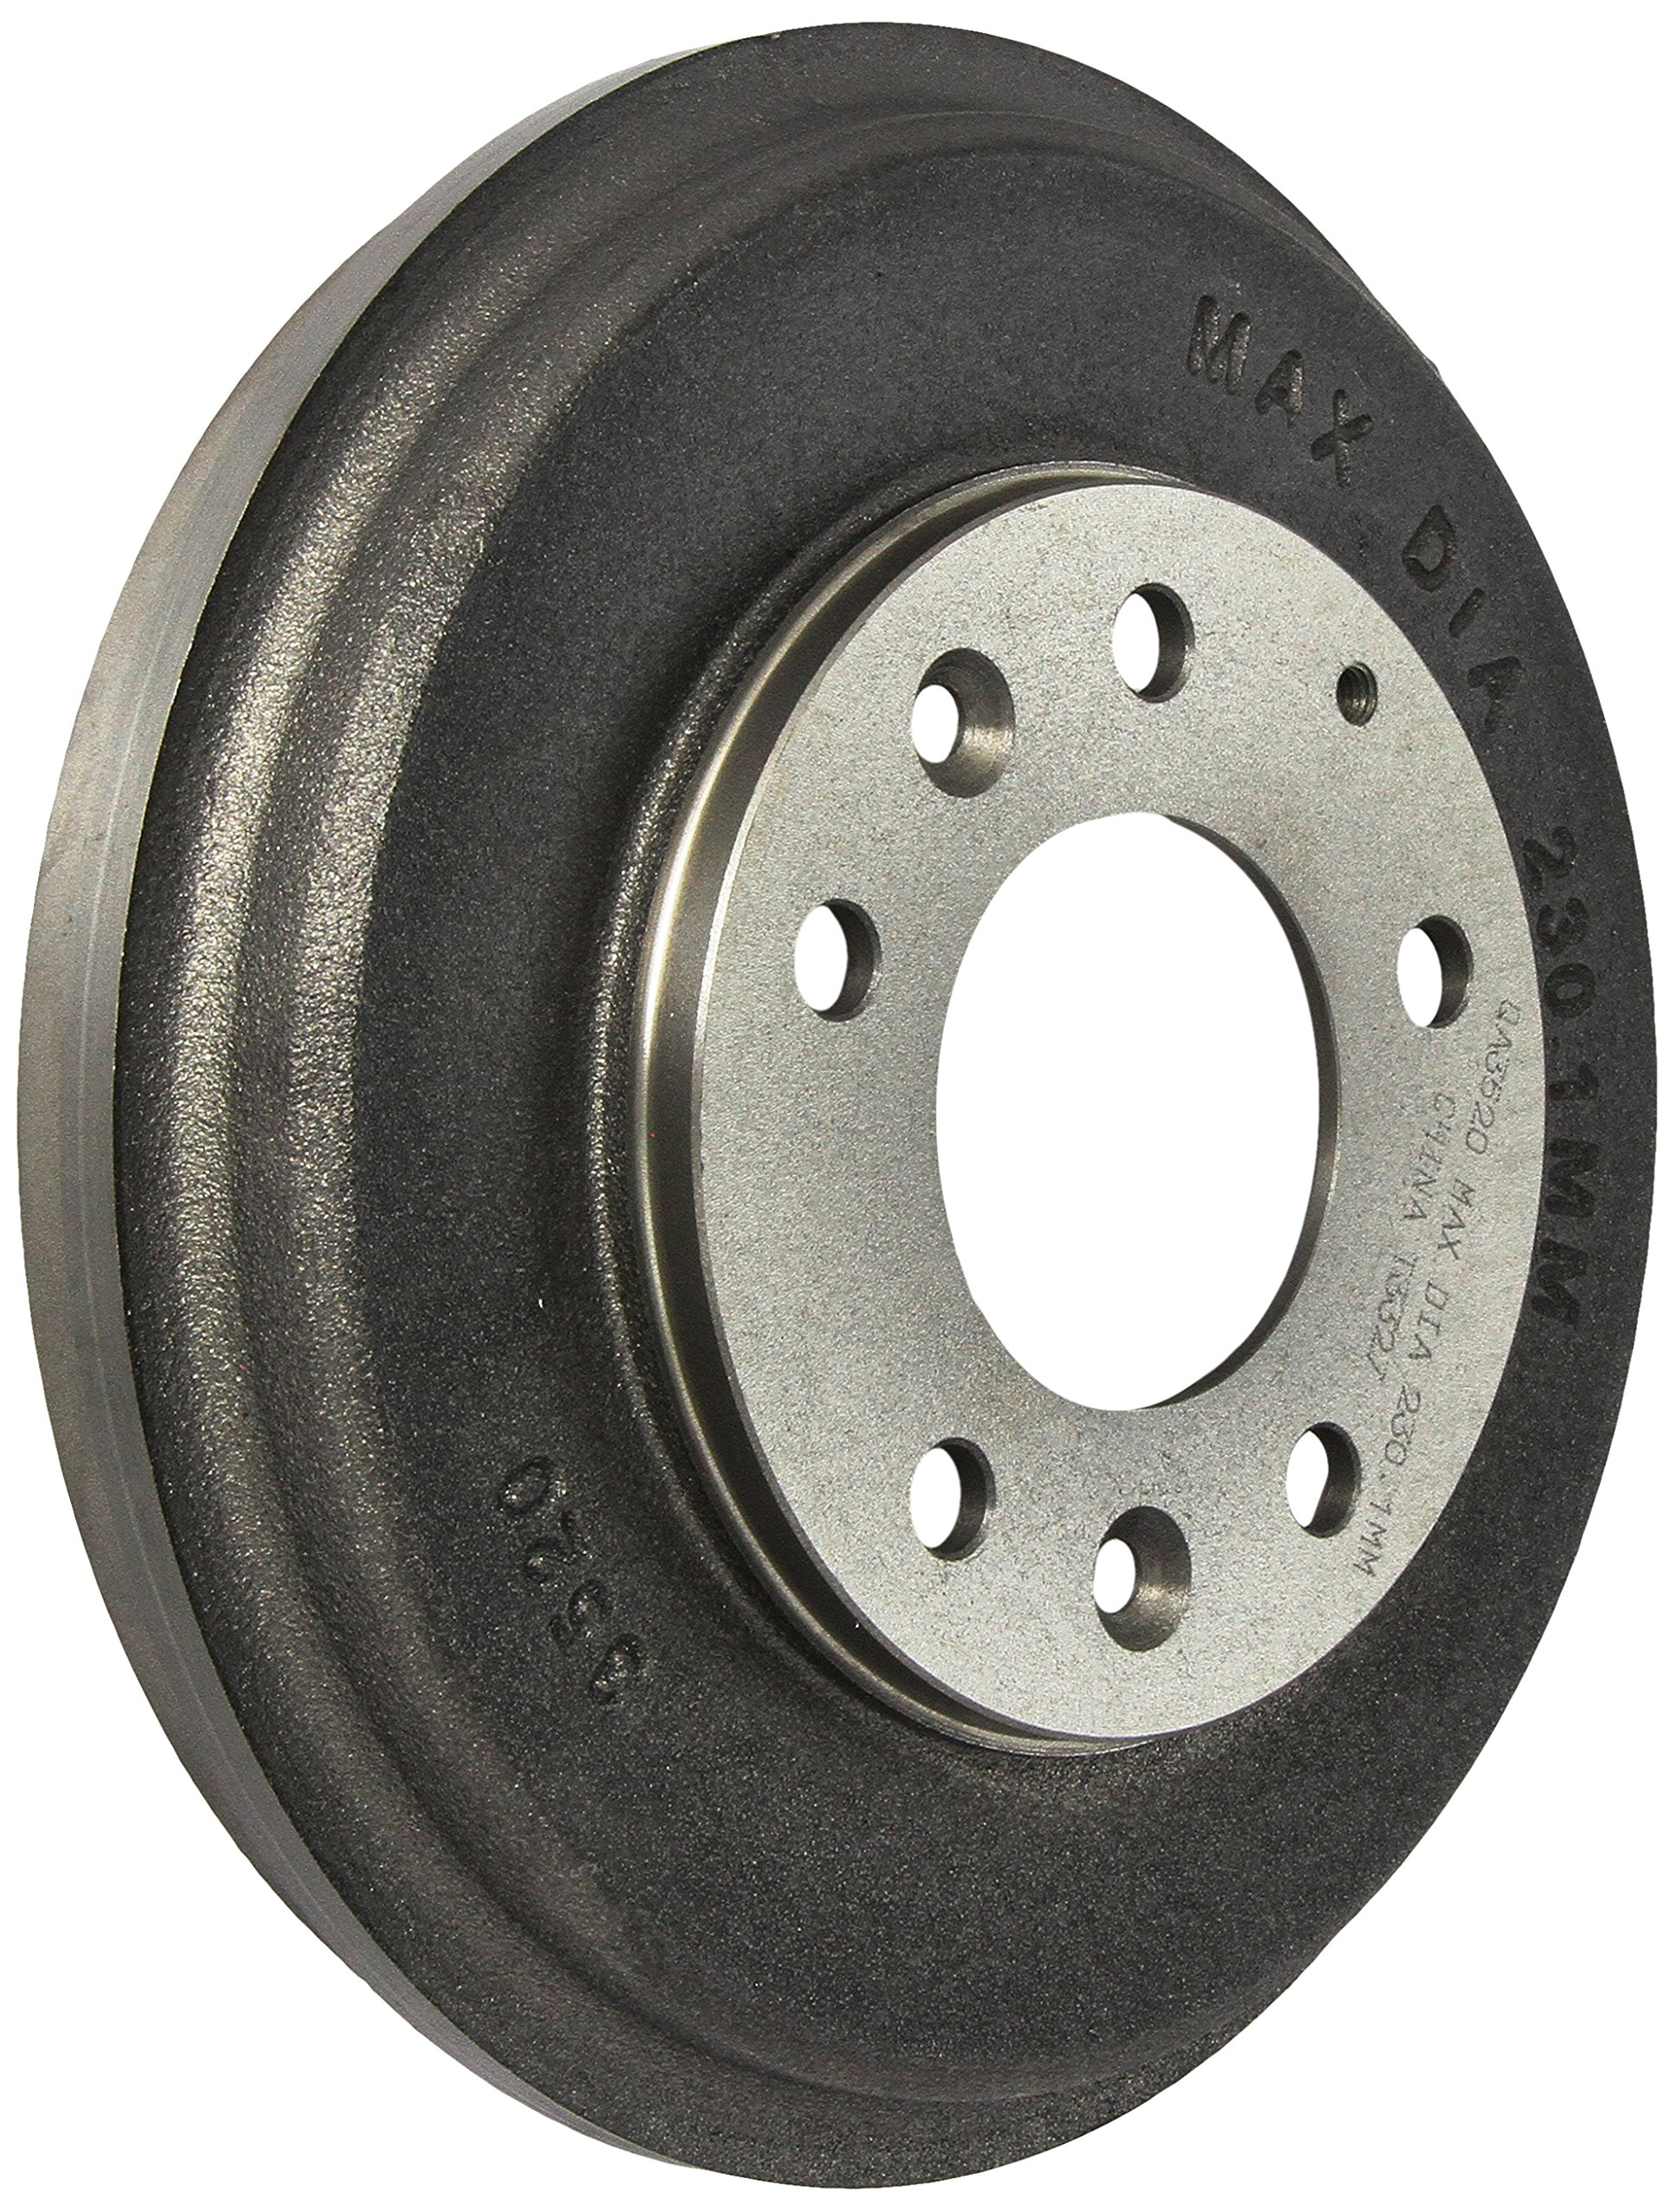 Bendix PDR0632 Brake Drum